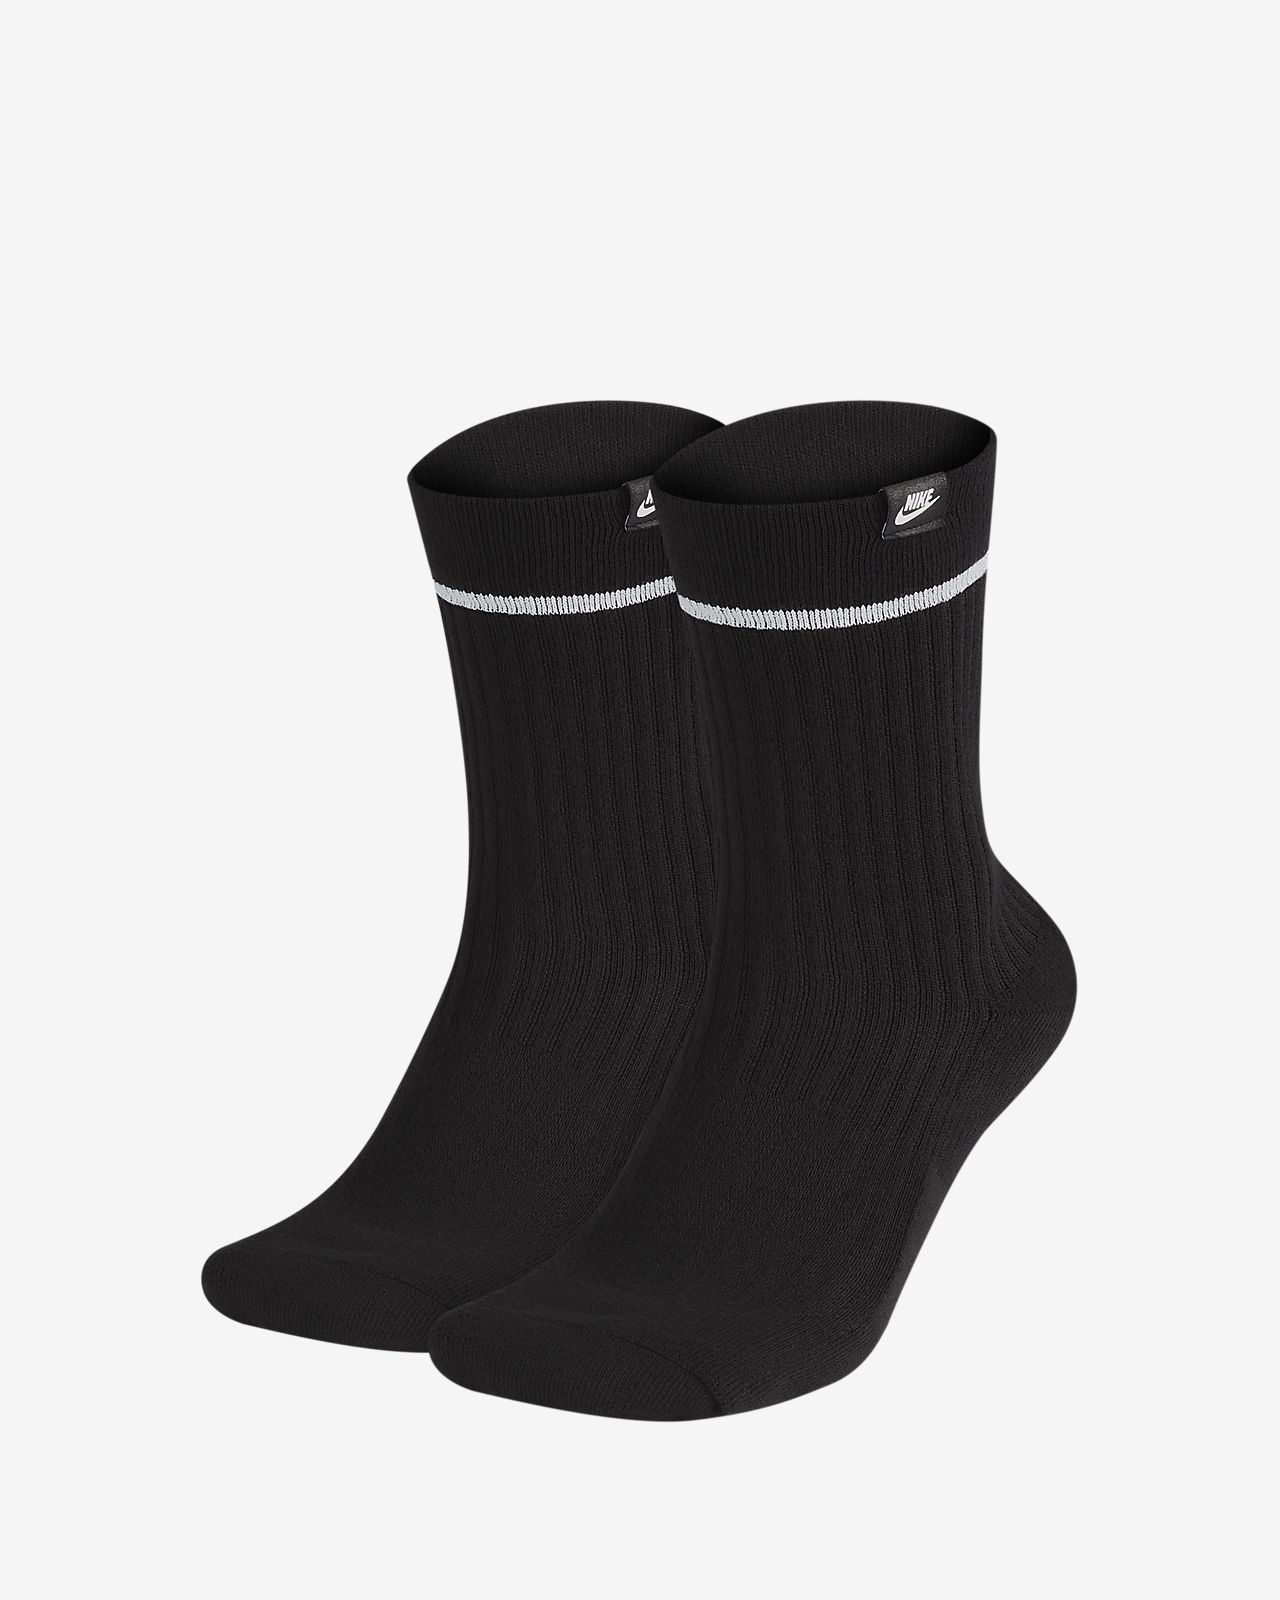 Nike SNEAKR Sox Essential Calcetines largos (2 pares)